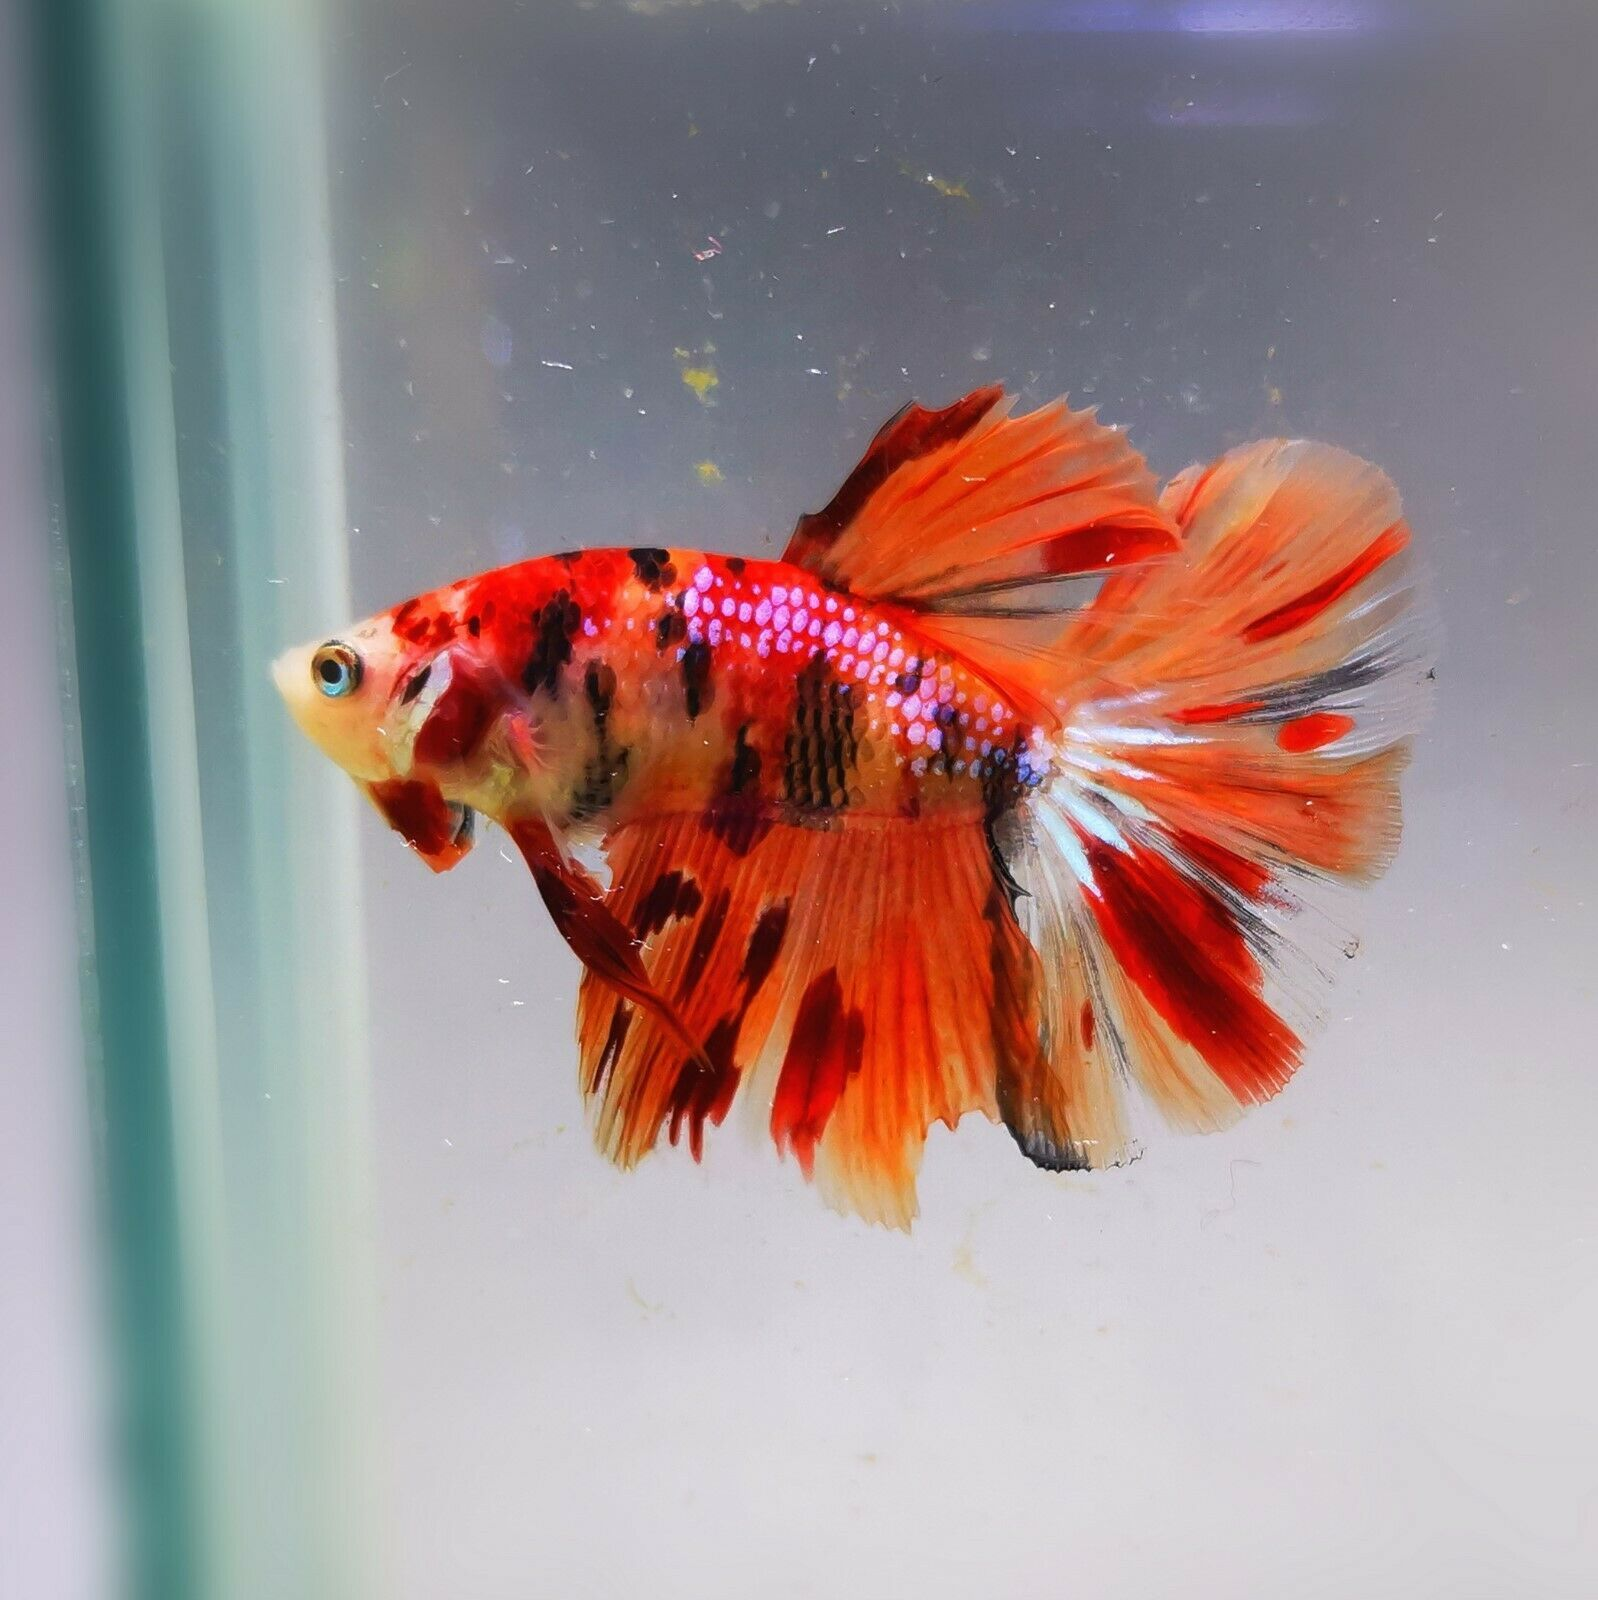 Live Betta Fish Super Koi Nemo Halfmoon Rare Ab000212 Betta Fish Ideas Of Betta Fish Bettafish Fis In 2020 Betta Aquarium Aquarium Fish For Sale Betta Tank